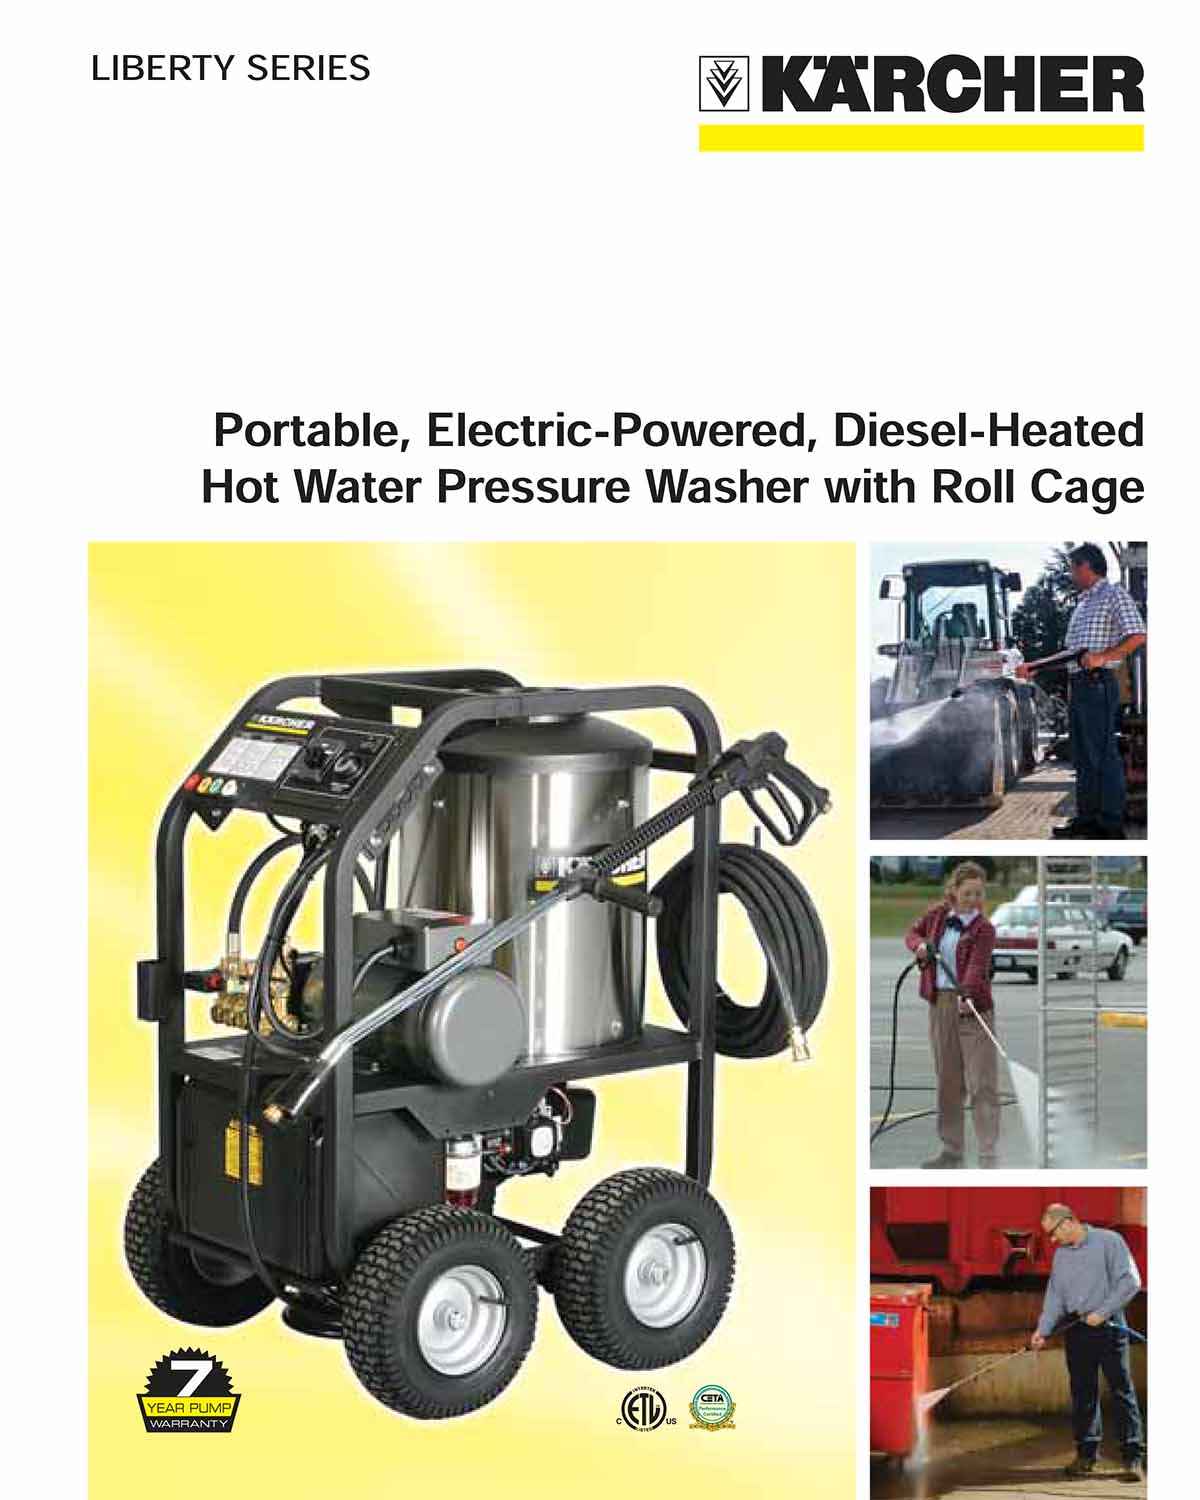 Karcher Liberty Series Hot Water Pressure Washer with Roll Cage